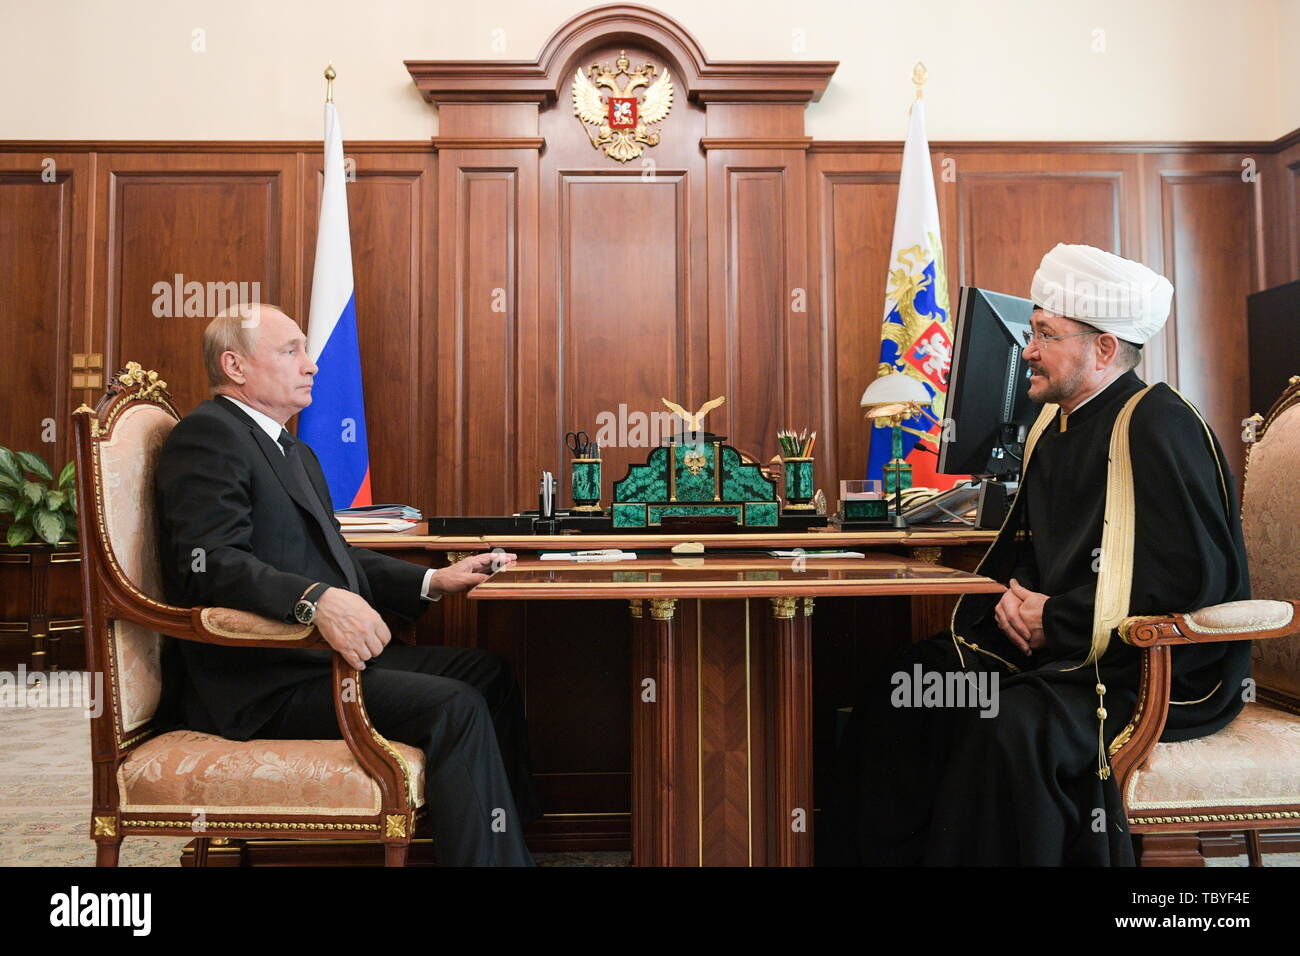 Moscow, Russia. 04th June, 2019. MOSCOW, RUSSIA - JUNE 4, 2019: Russia's President Vladimir Putin (L) meets with Ravil Gainutdin, chairman of the Russian Council of Muftis, at the Moscow Kremlin. Alexei Druzhinin/Russian Presidential Press and Information Office/TASS Credit: ITAR-TASS News Agency/Alamy Live News - Stock Image